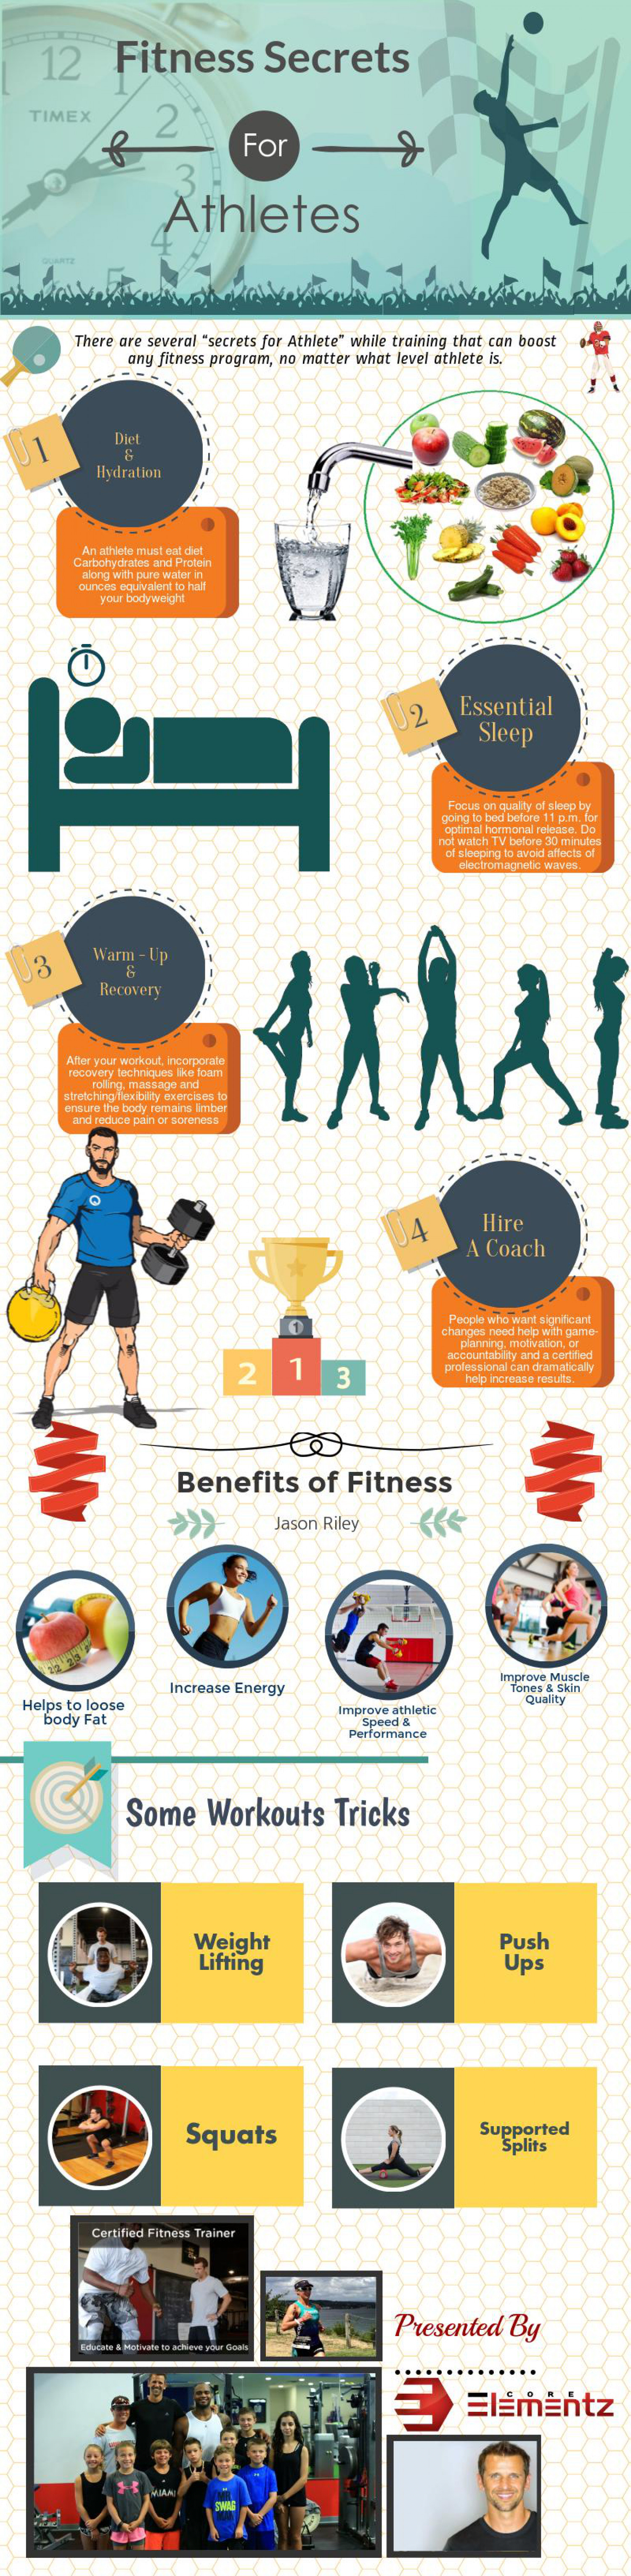 The Secret Behind an Athlete's Fitness Infographic